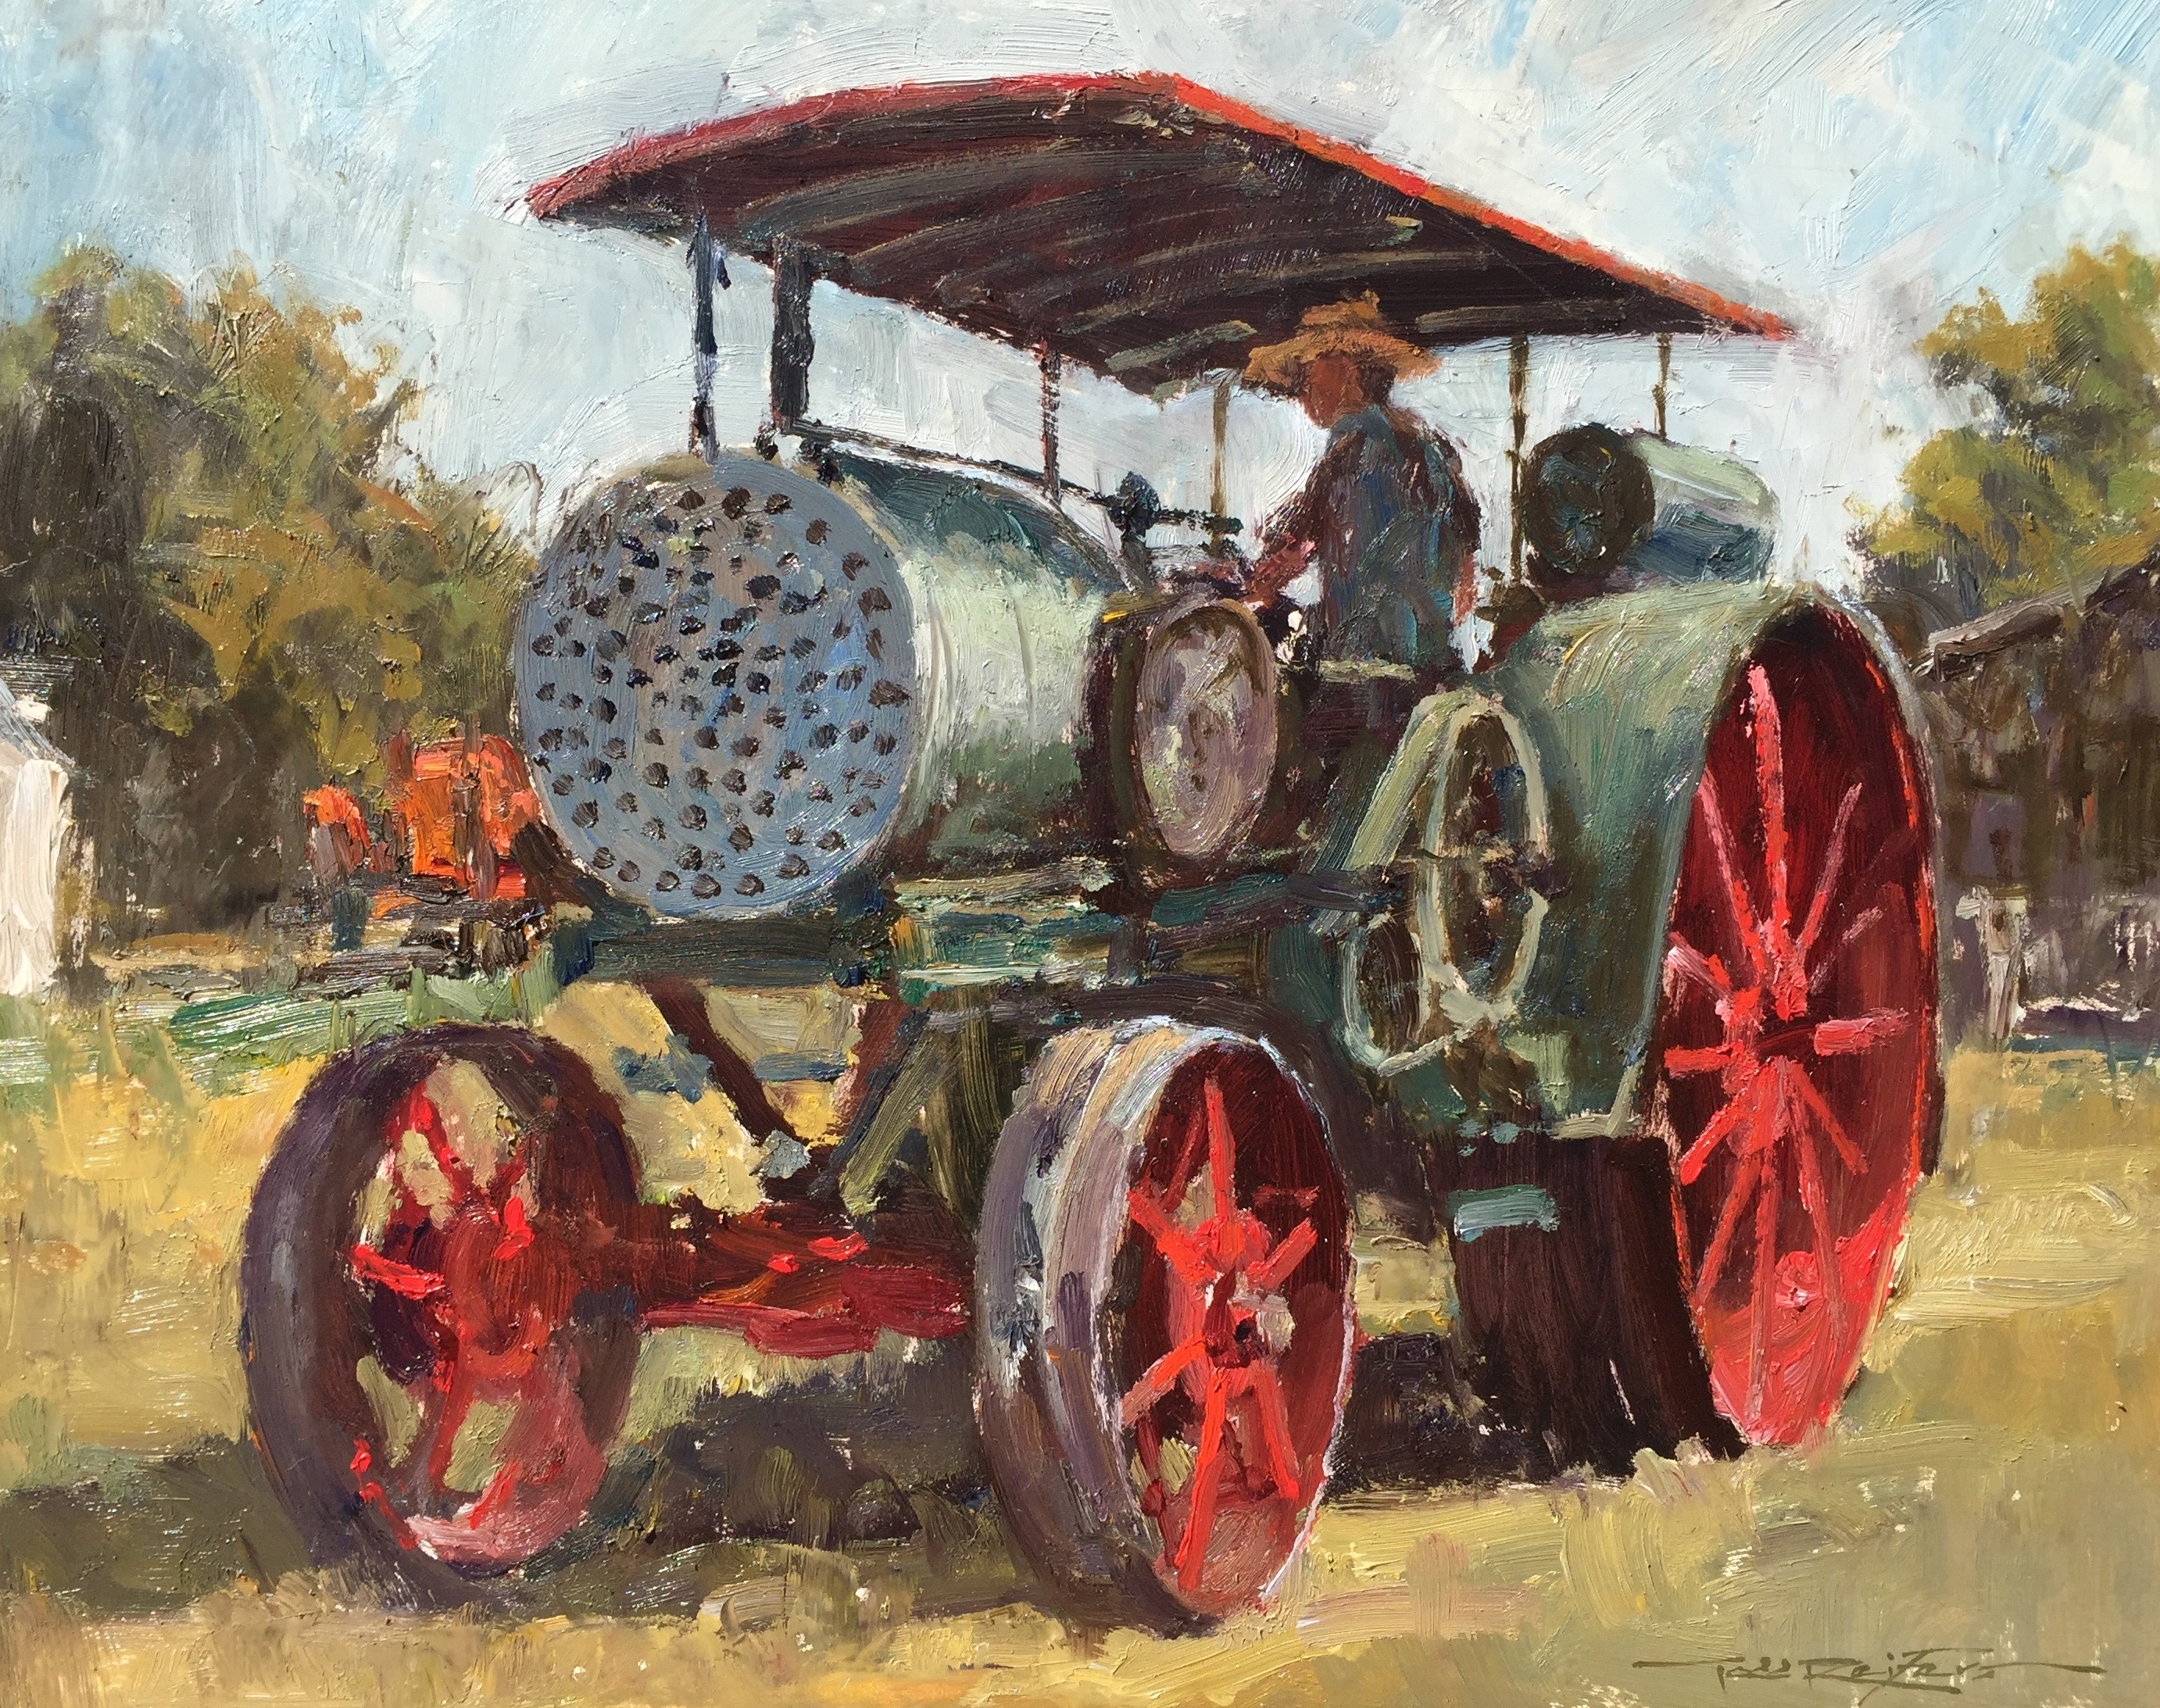 reifers-1915altman-taylortractor-cropped